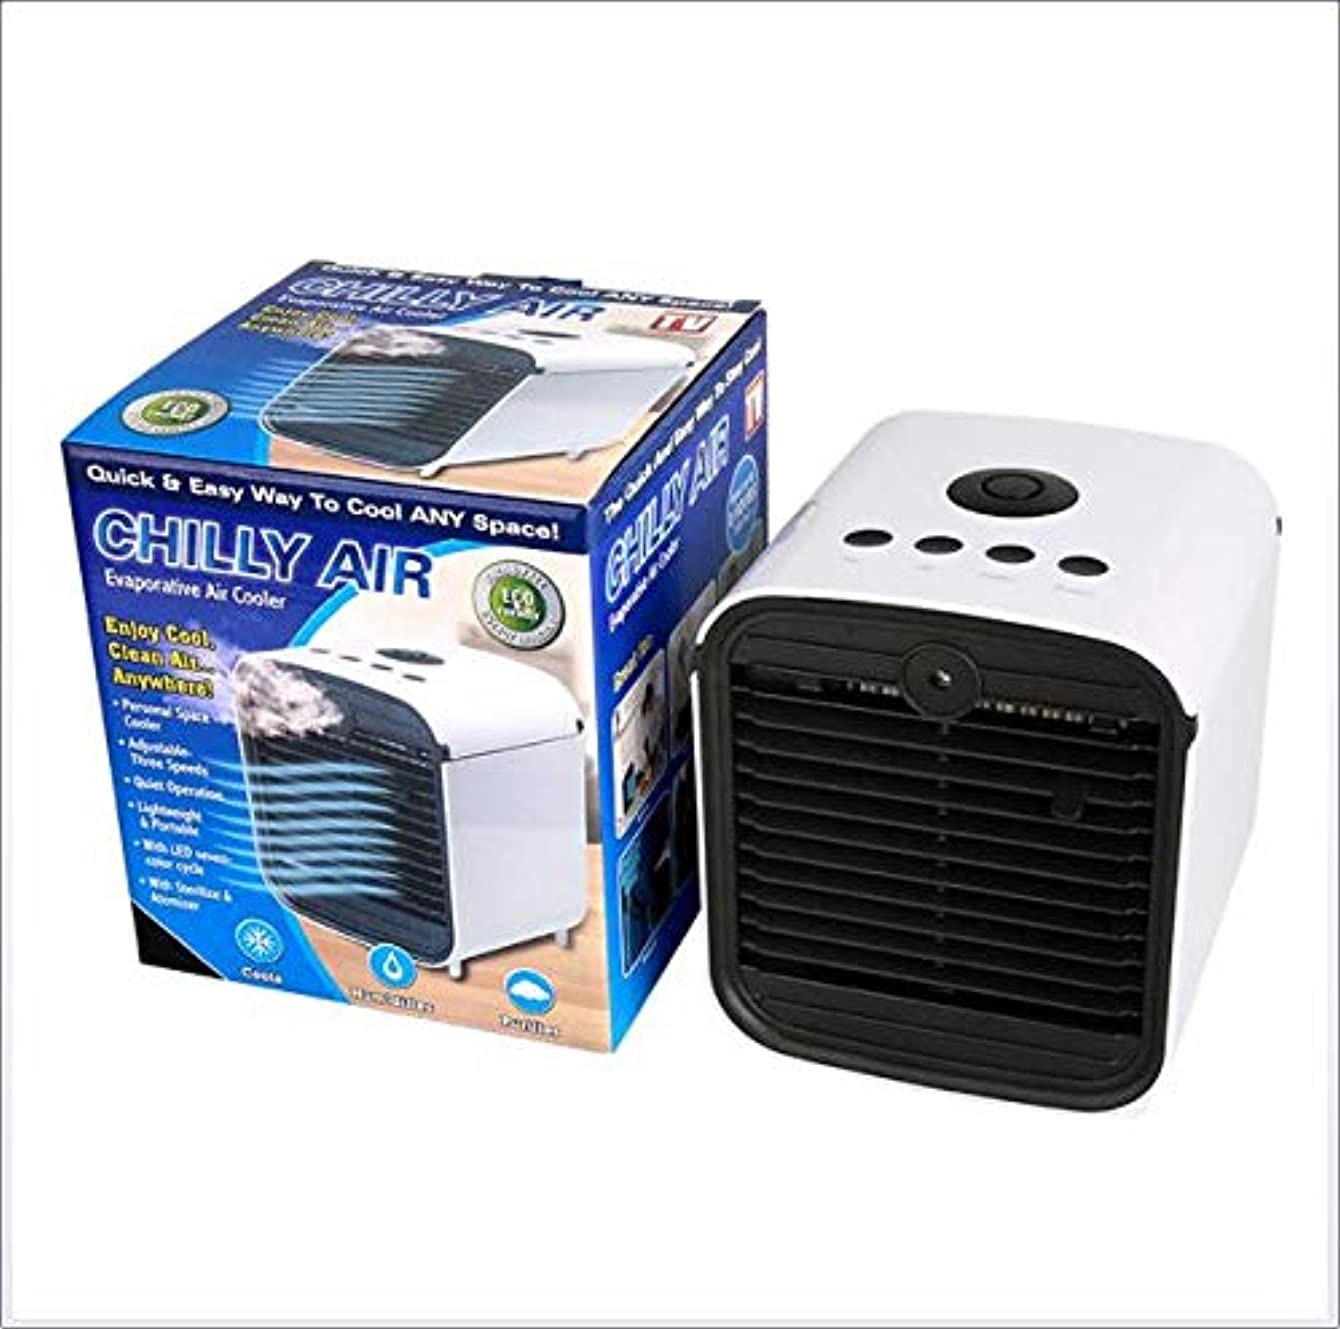 LBJ Air Cooler, Portable Air Conditioning Fan, USB Mini, Personal Space Air Cooler, Evaporative Air Cooler, Air Conditioning Fan Cooler